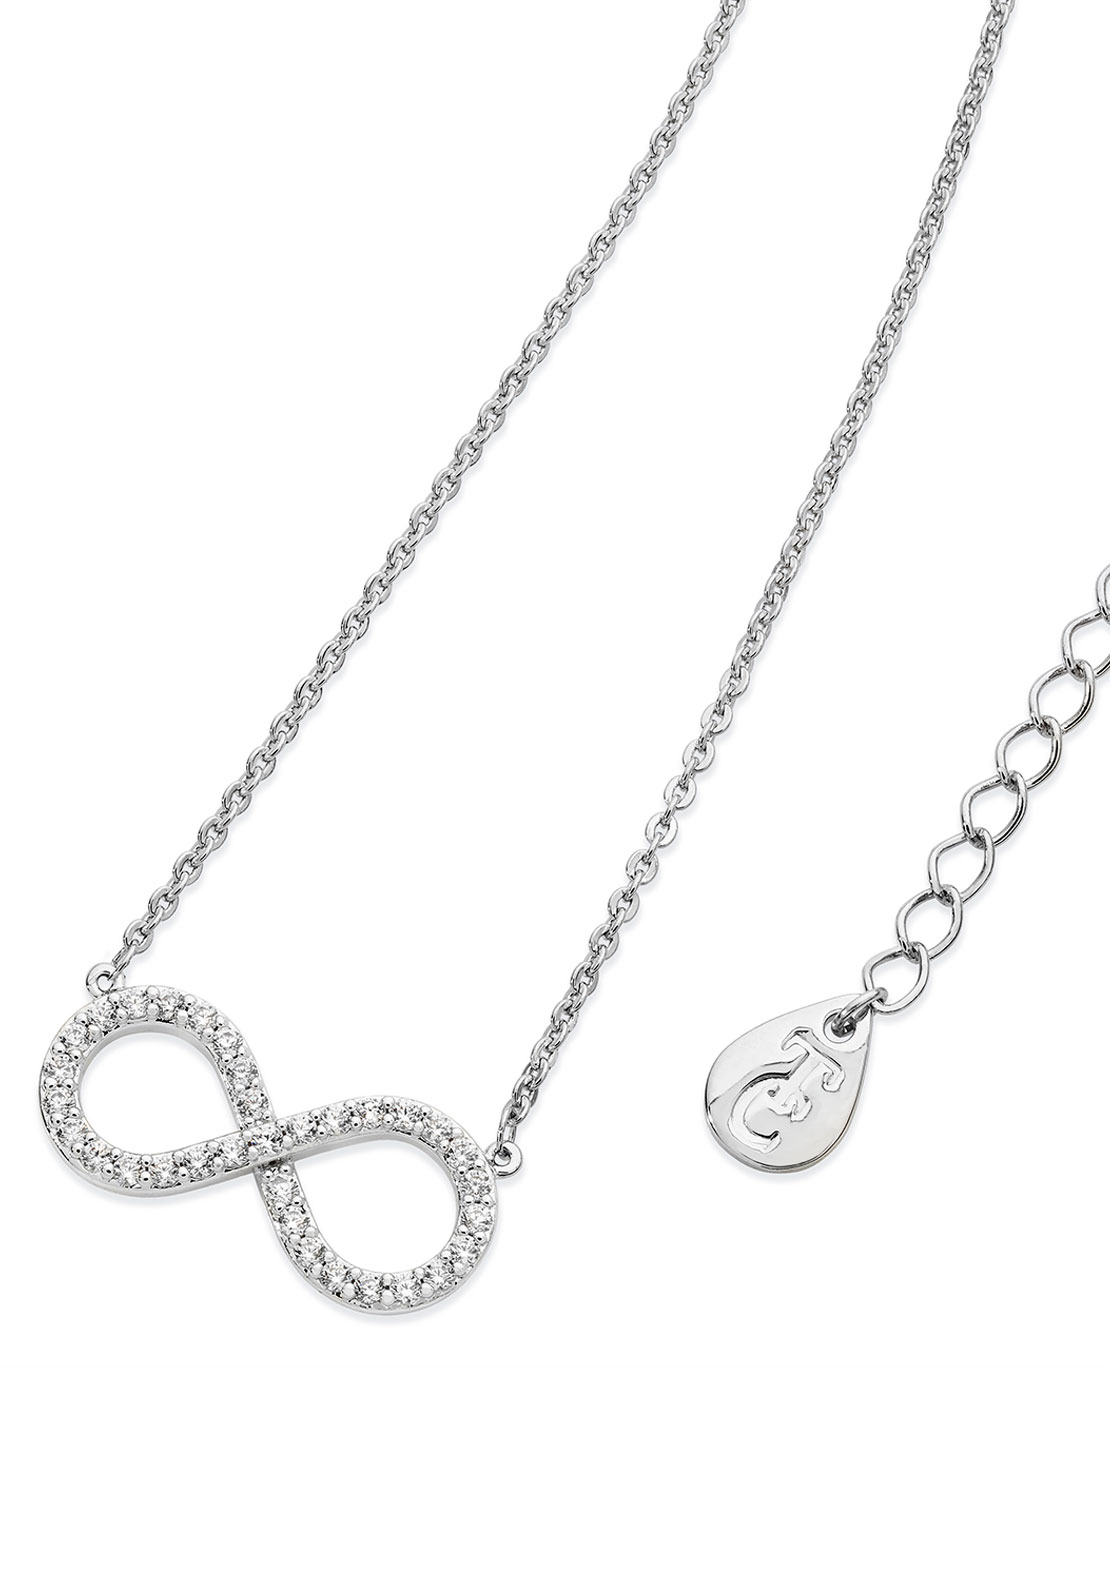 Tipperary Crystal 8 Shape Infinity Necklace, Silver